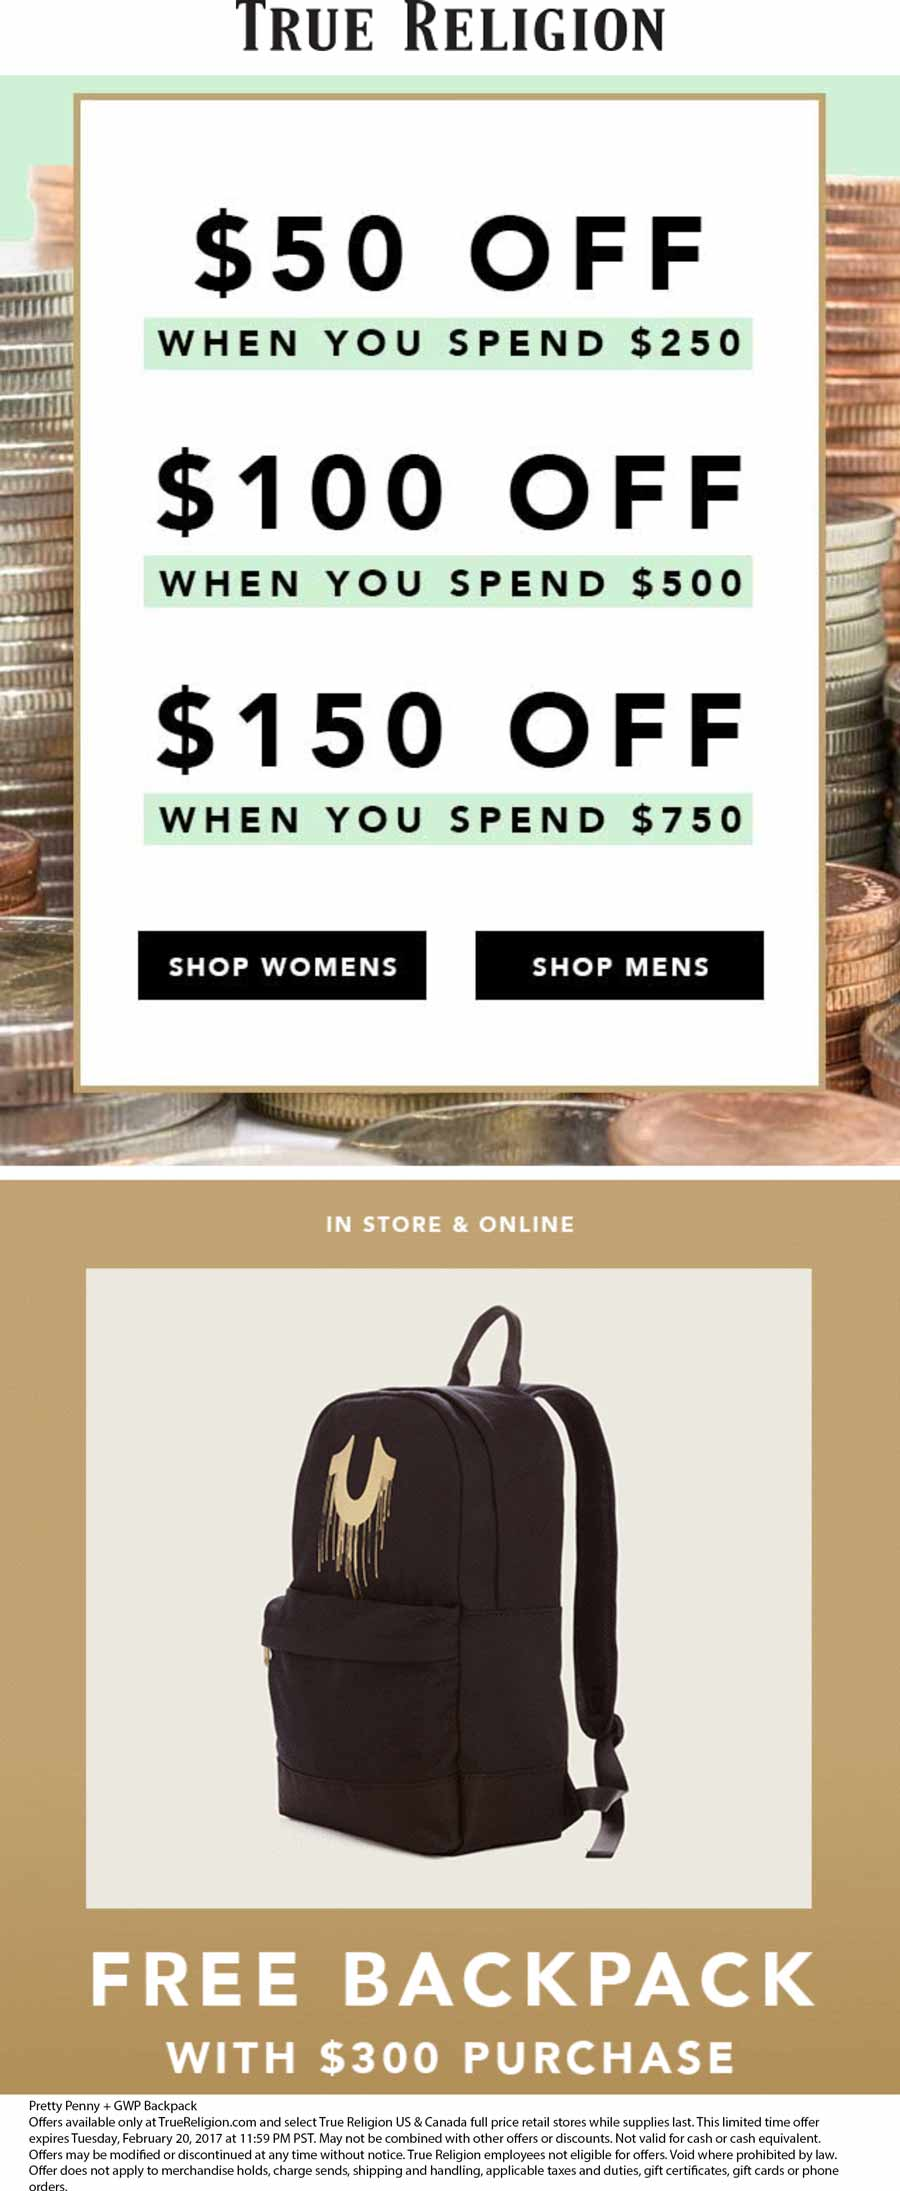 True Religion Coupon December 2017 $50 off $250 & more + free backpack on $300 at True Religion, ditto online